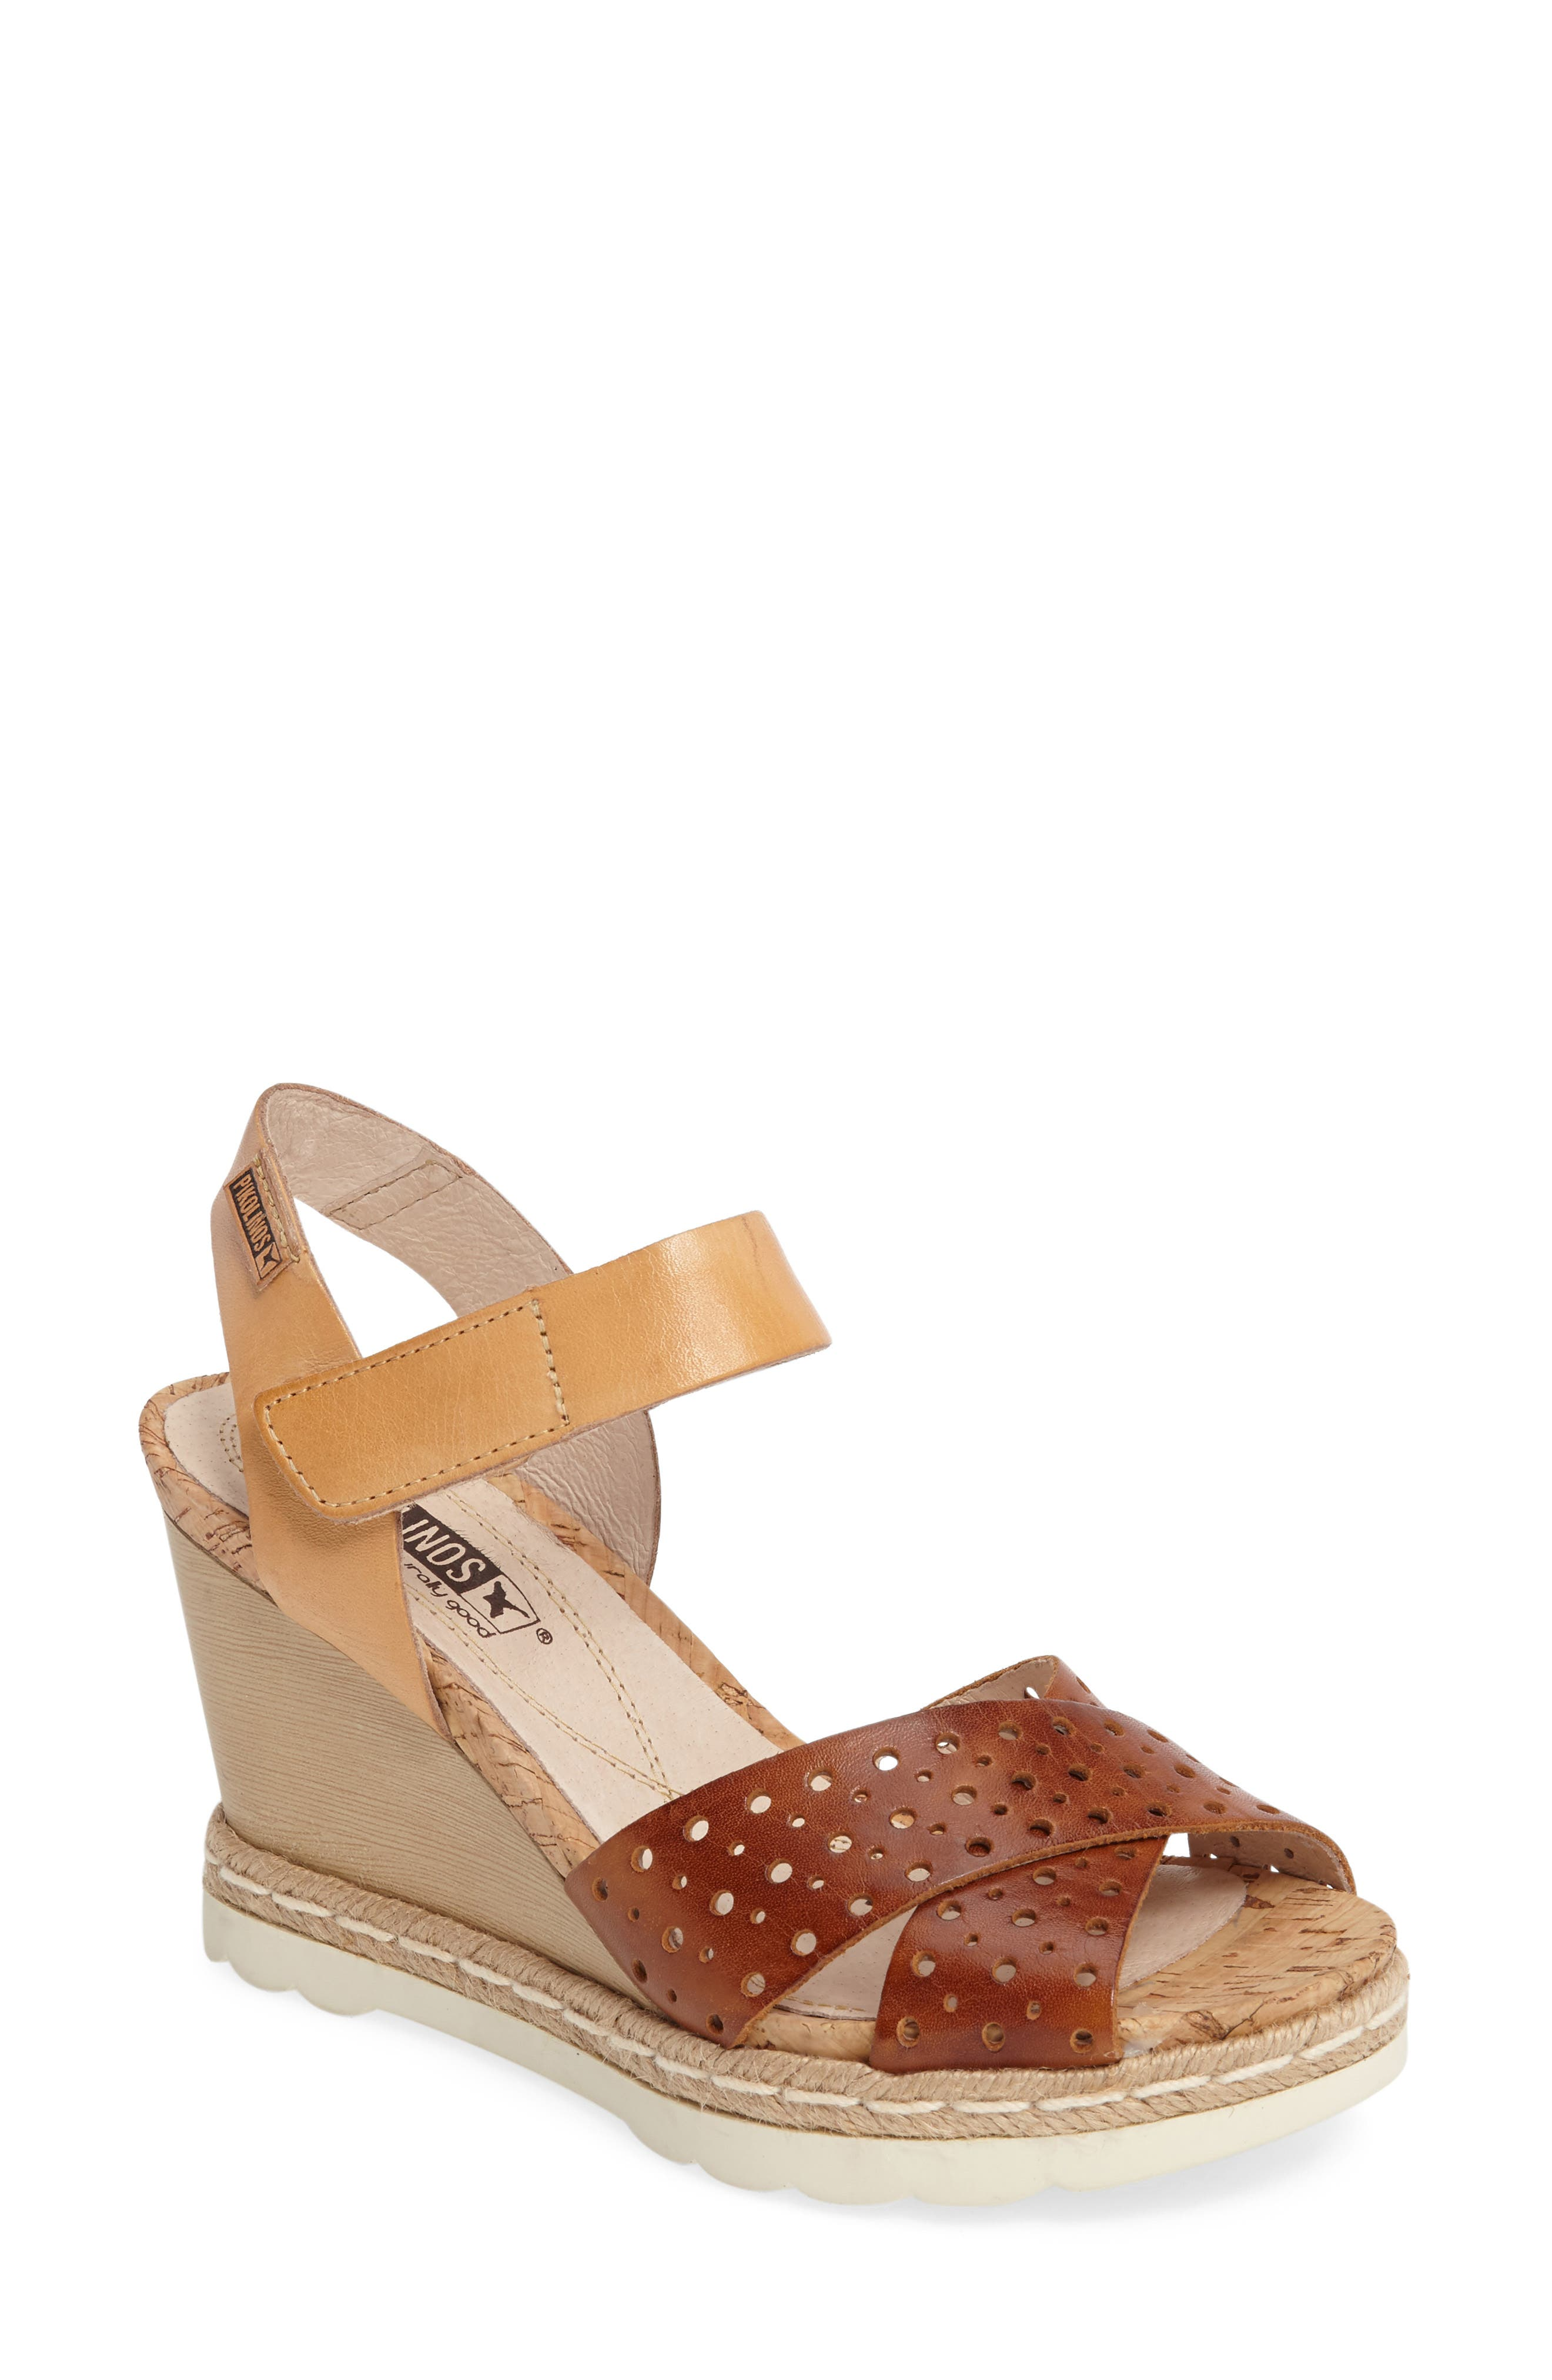 Bali Wedge Sandal,                         Main,                         color, BRANDY CAMEL LEATHER